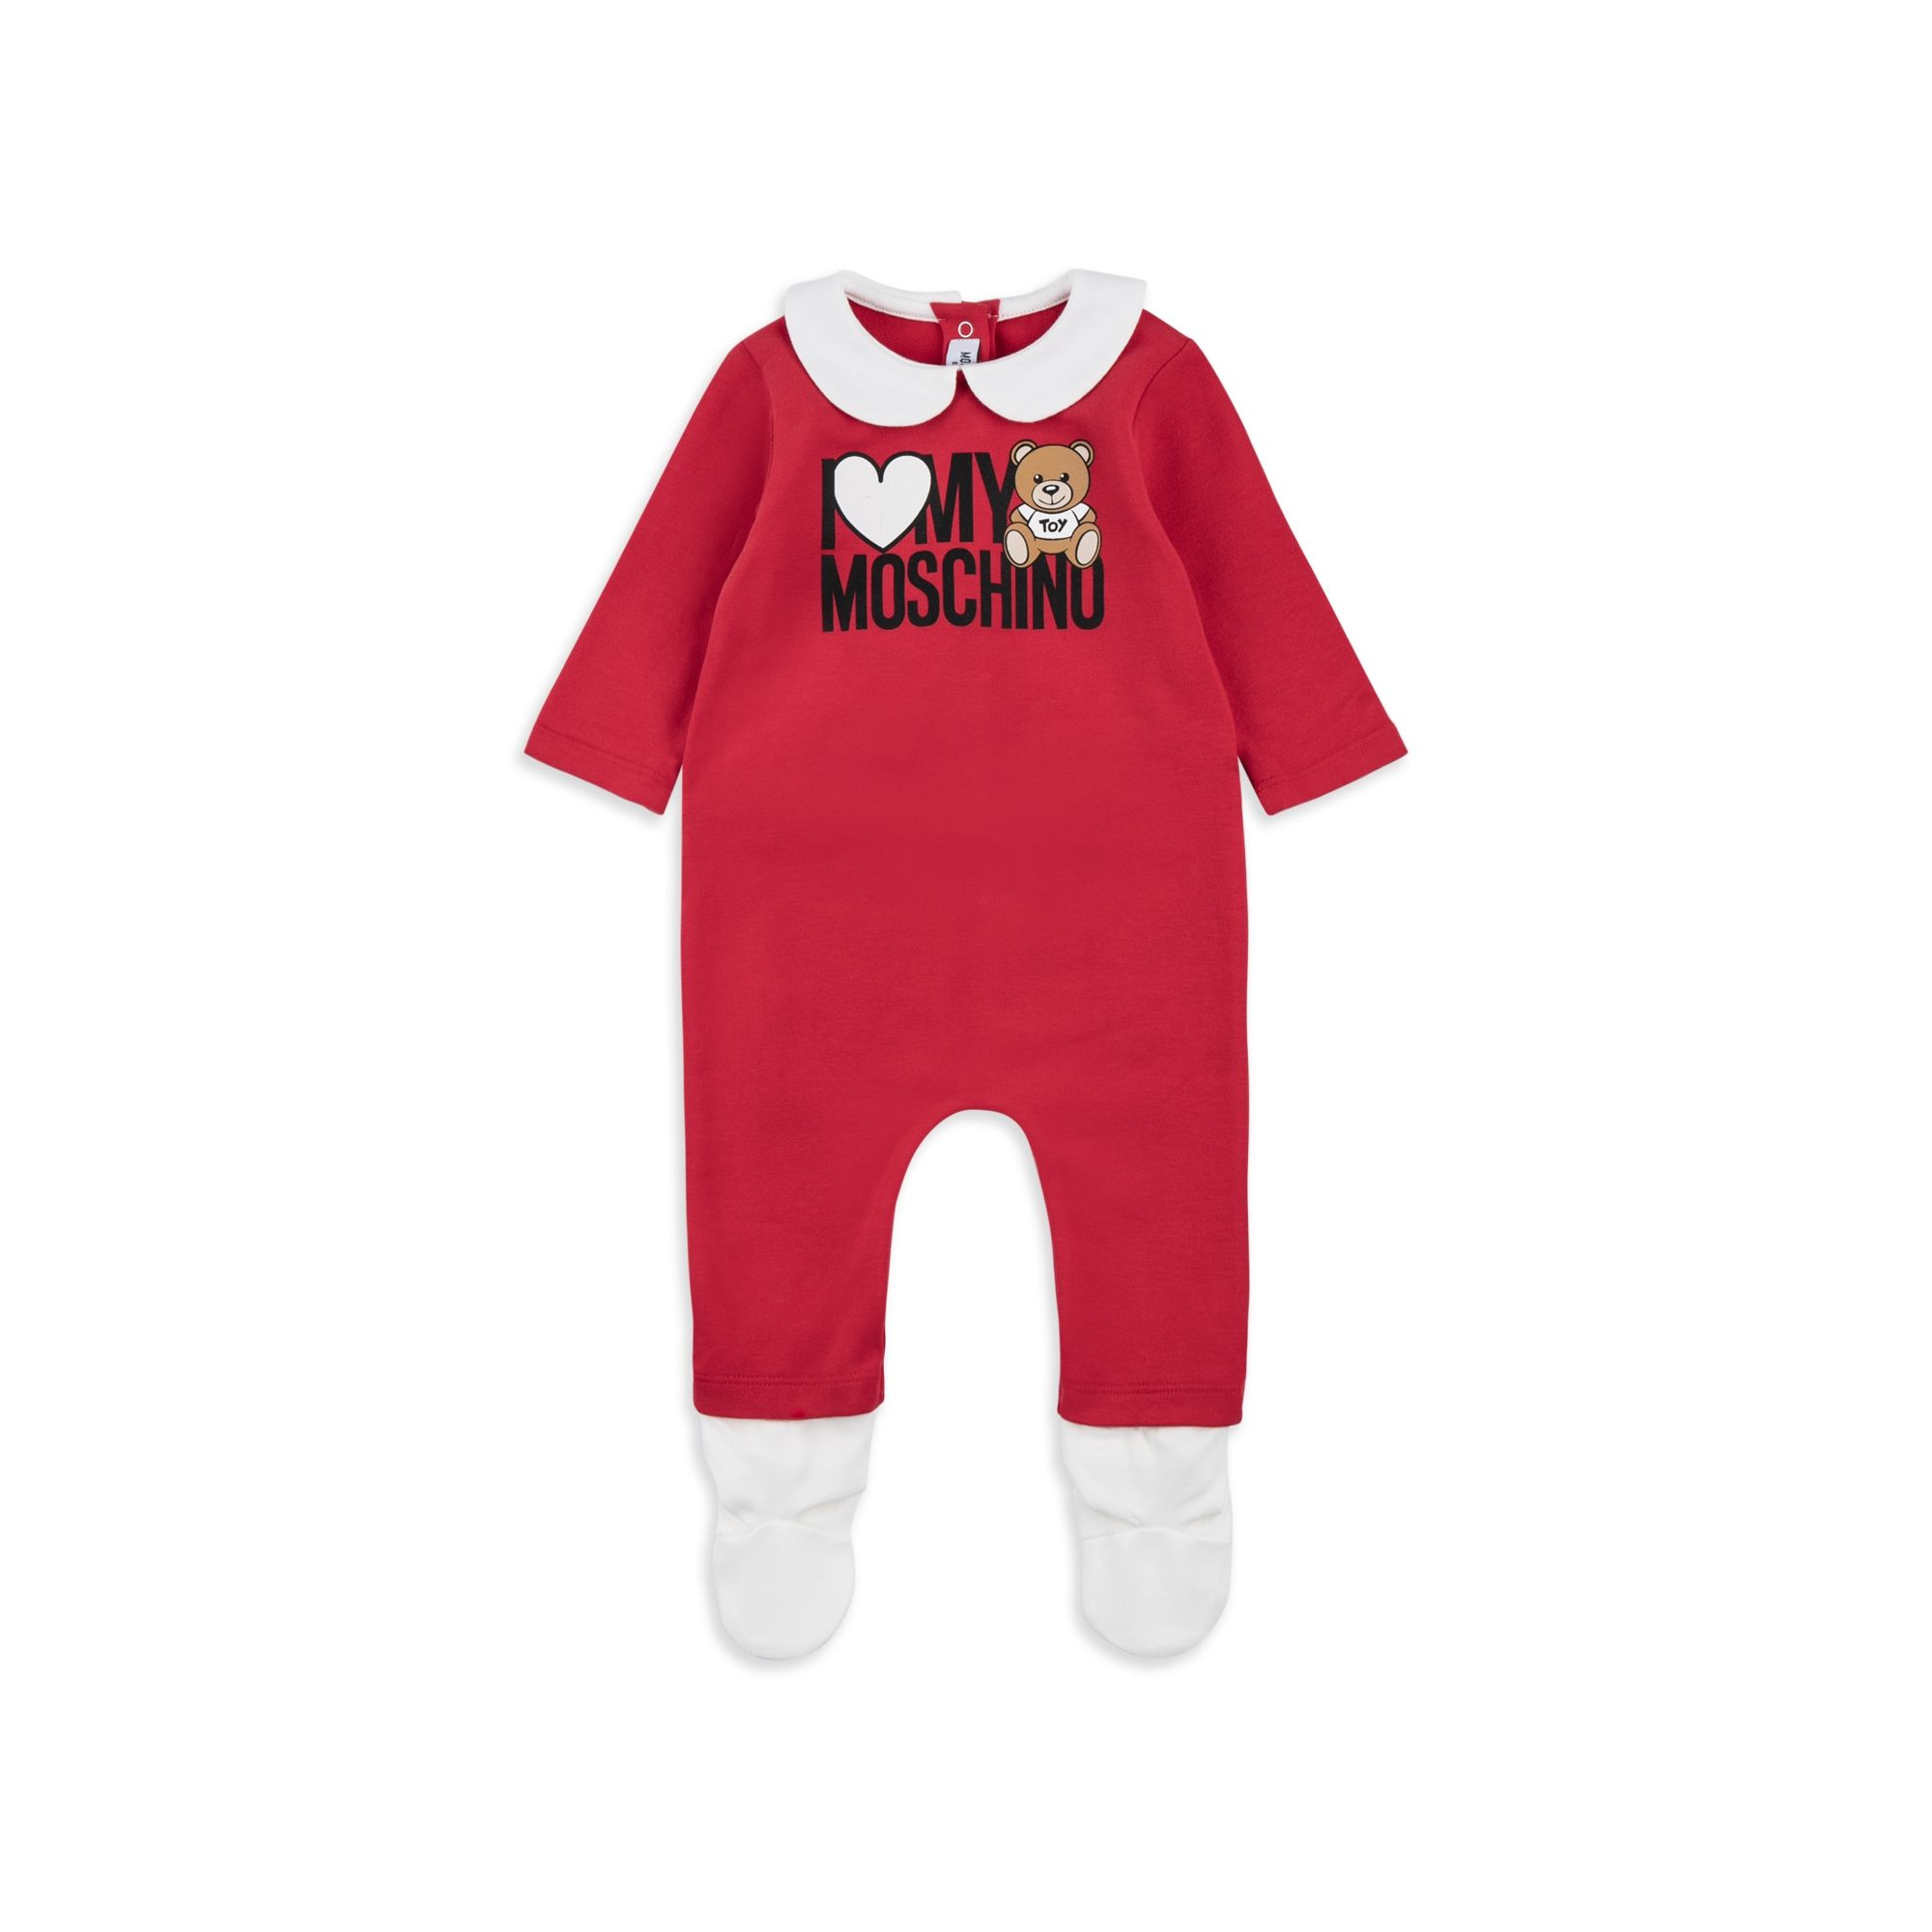 5841748a7 MOSCHINO Baby Girls Teddy Heart Coverall - Red Baby girls coverall • Soft  cotton jersey • Popper fastenings • Peter-Pan collar • Teddy heart logo  graphic ...